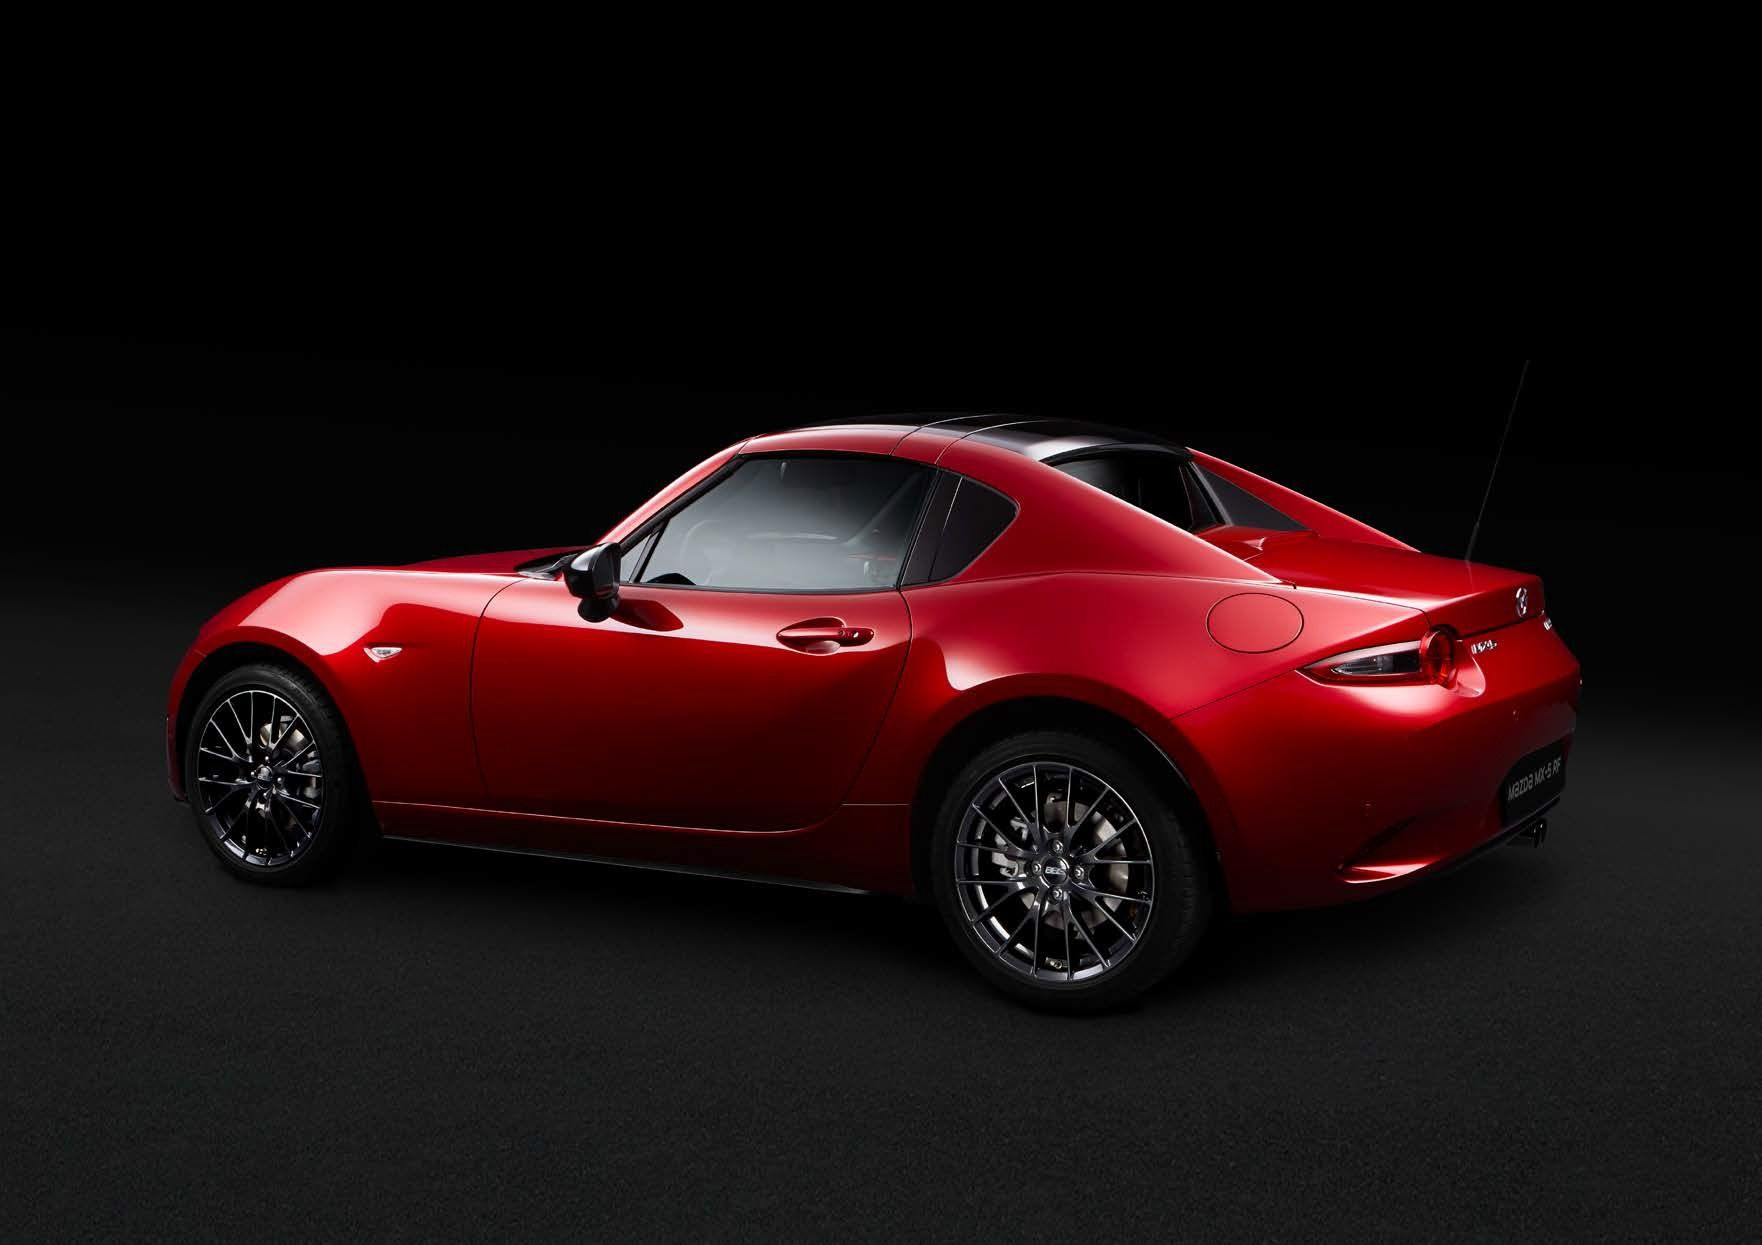 MAZDA PRESENTA EL MAZDA MX-5 RF IGNITION